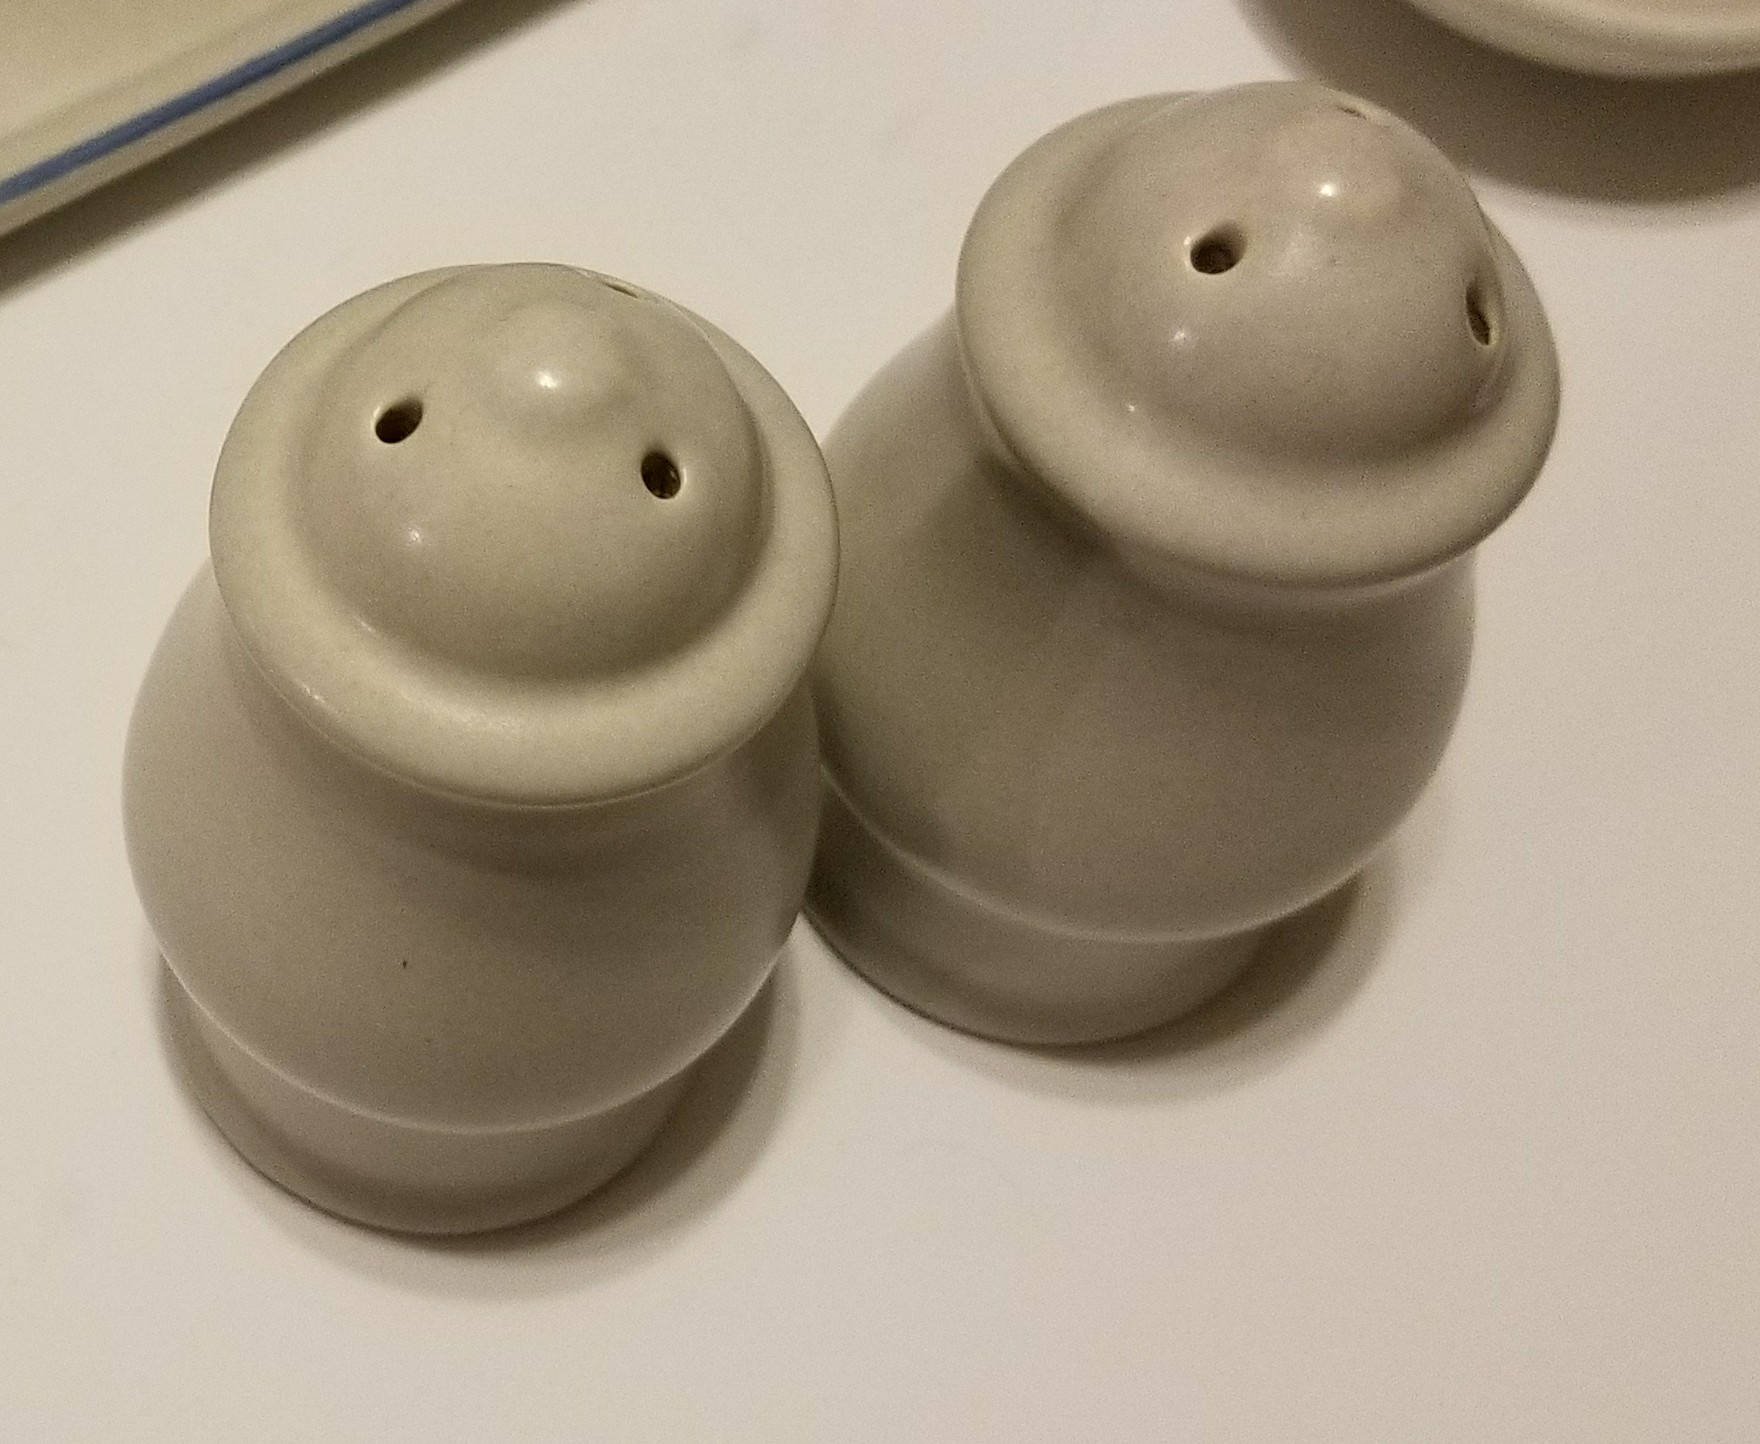 Vintage Discontinued Pfaltzgraff Yorktowne USA Salt and Pepper Set